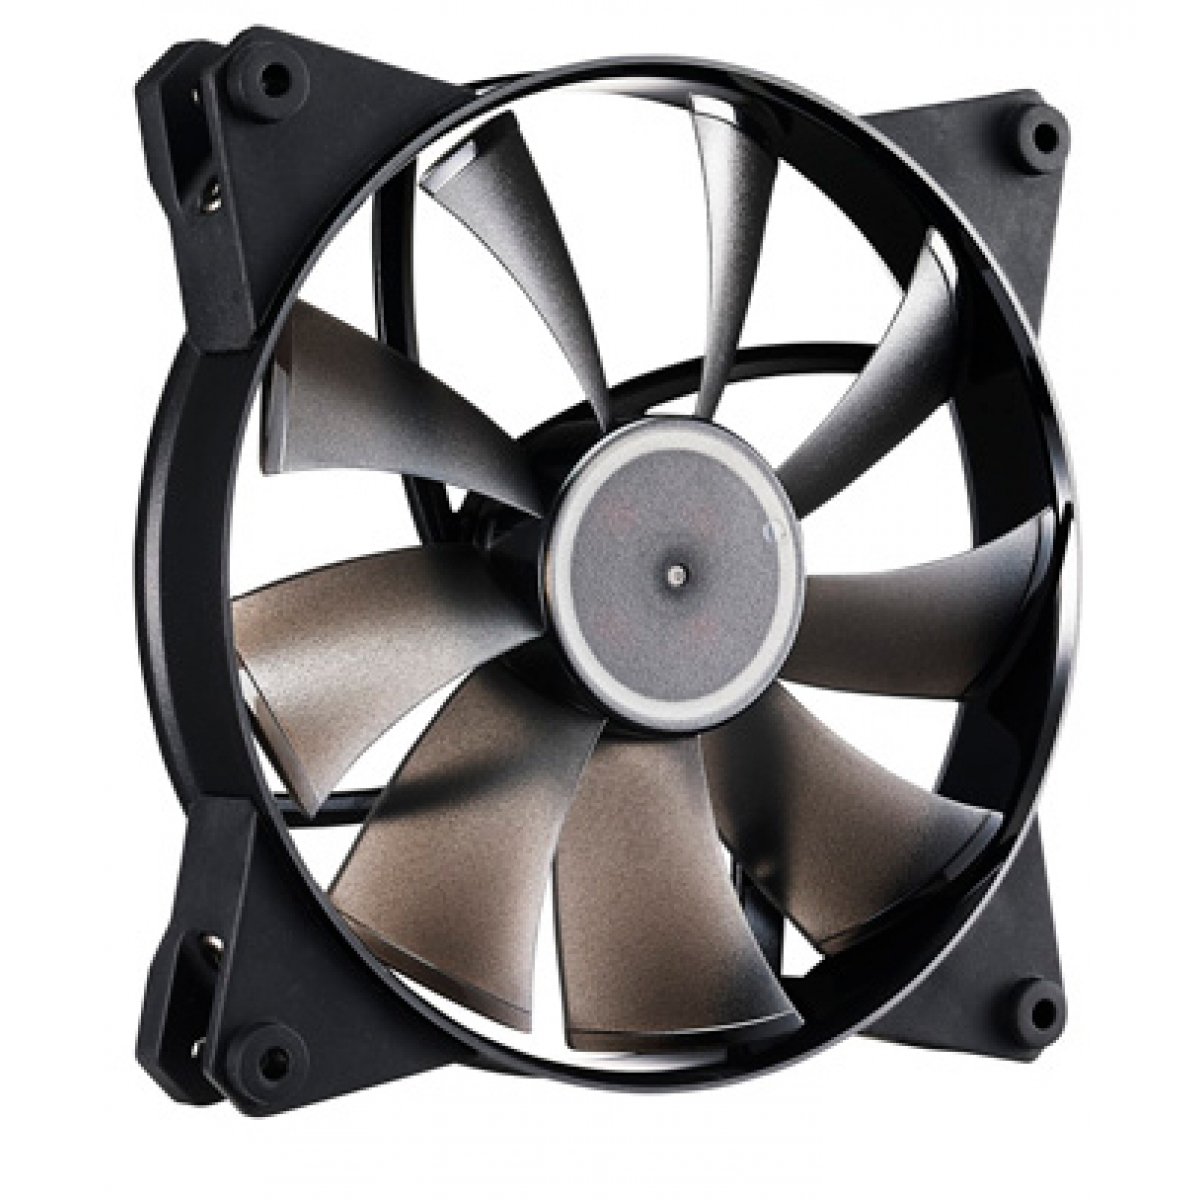 Cooler Para Gabinete Cooler Master Fan PRO 140 Air Flow, Black 140mm, MFY-F4NN-08NMK-R1